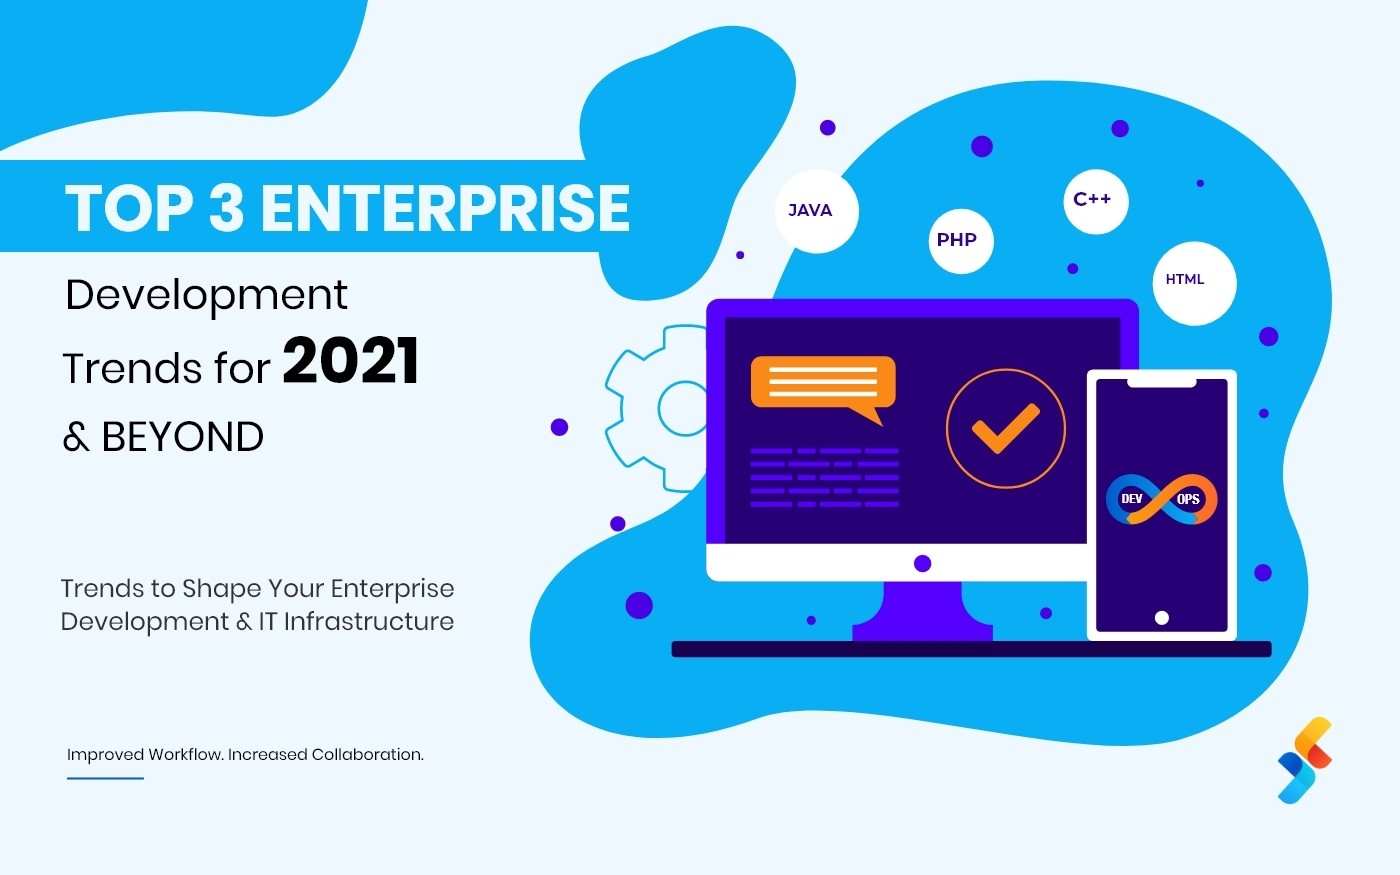 Top 3 Enterprise Developer Trends for 2021 and Beyond